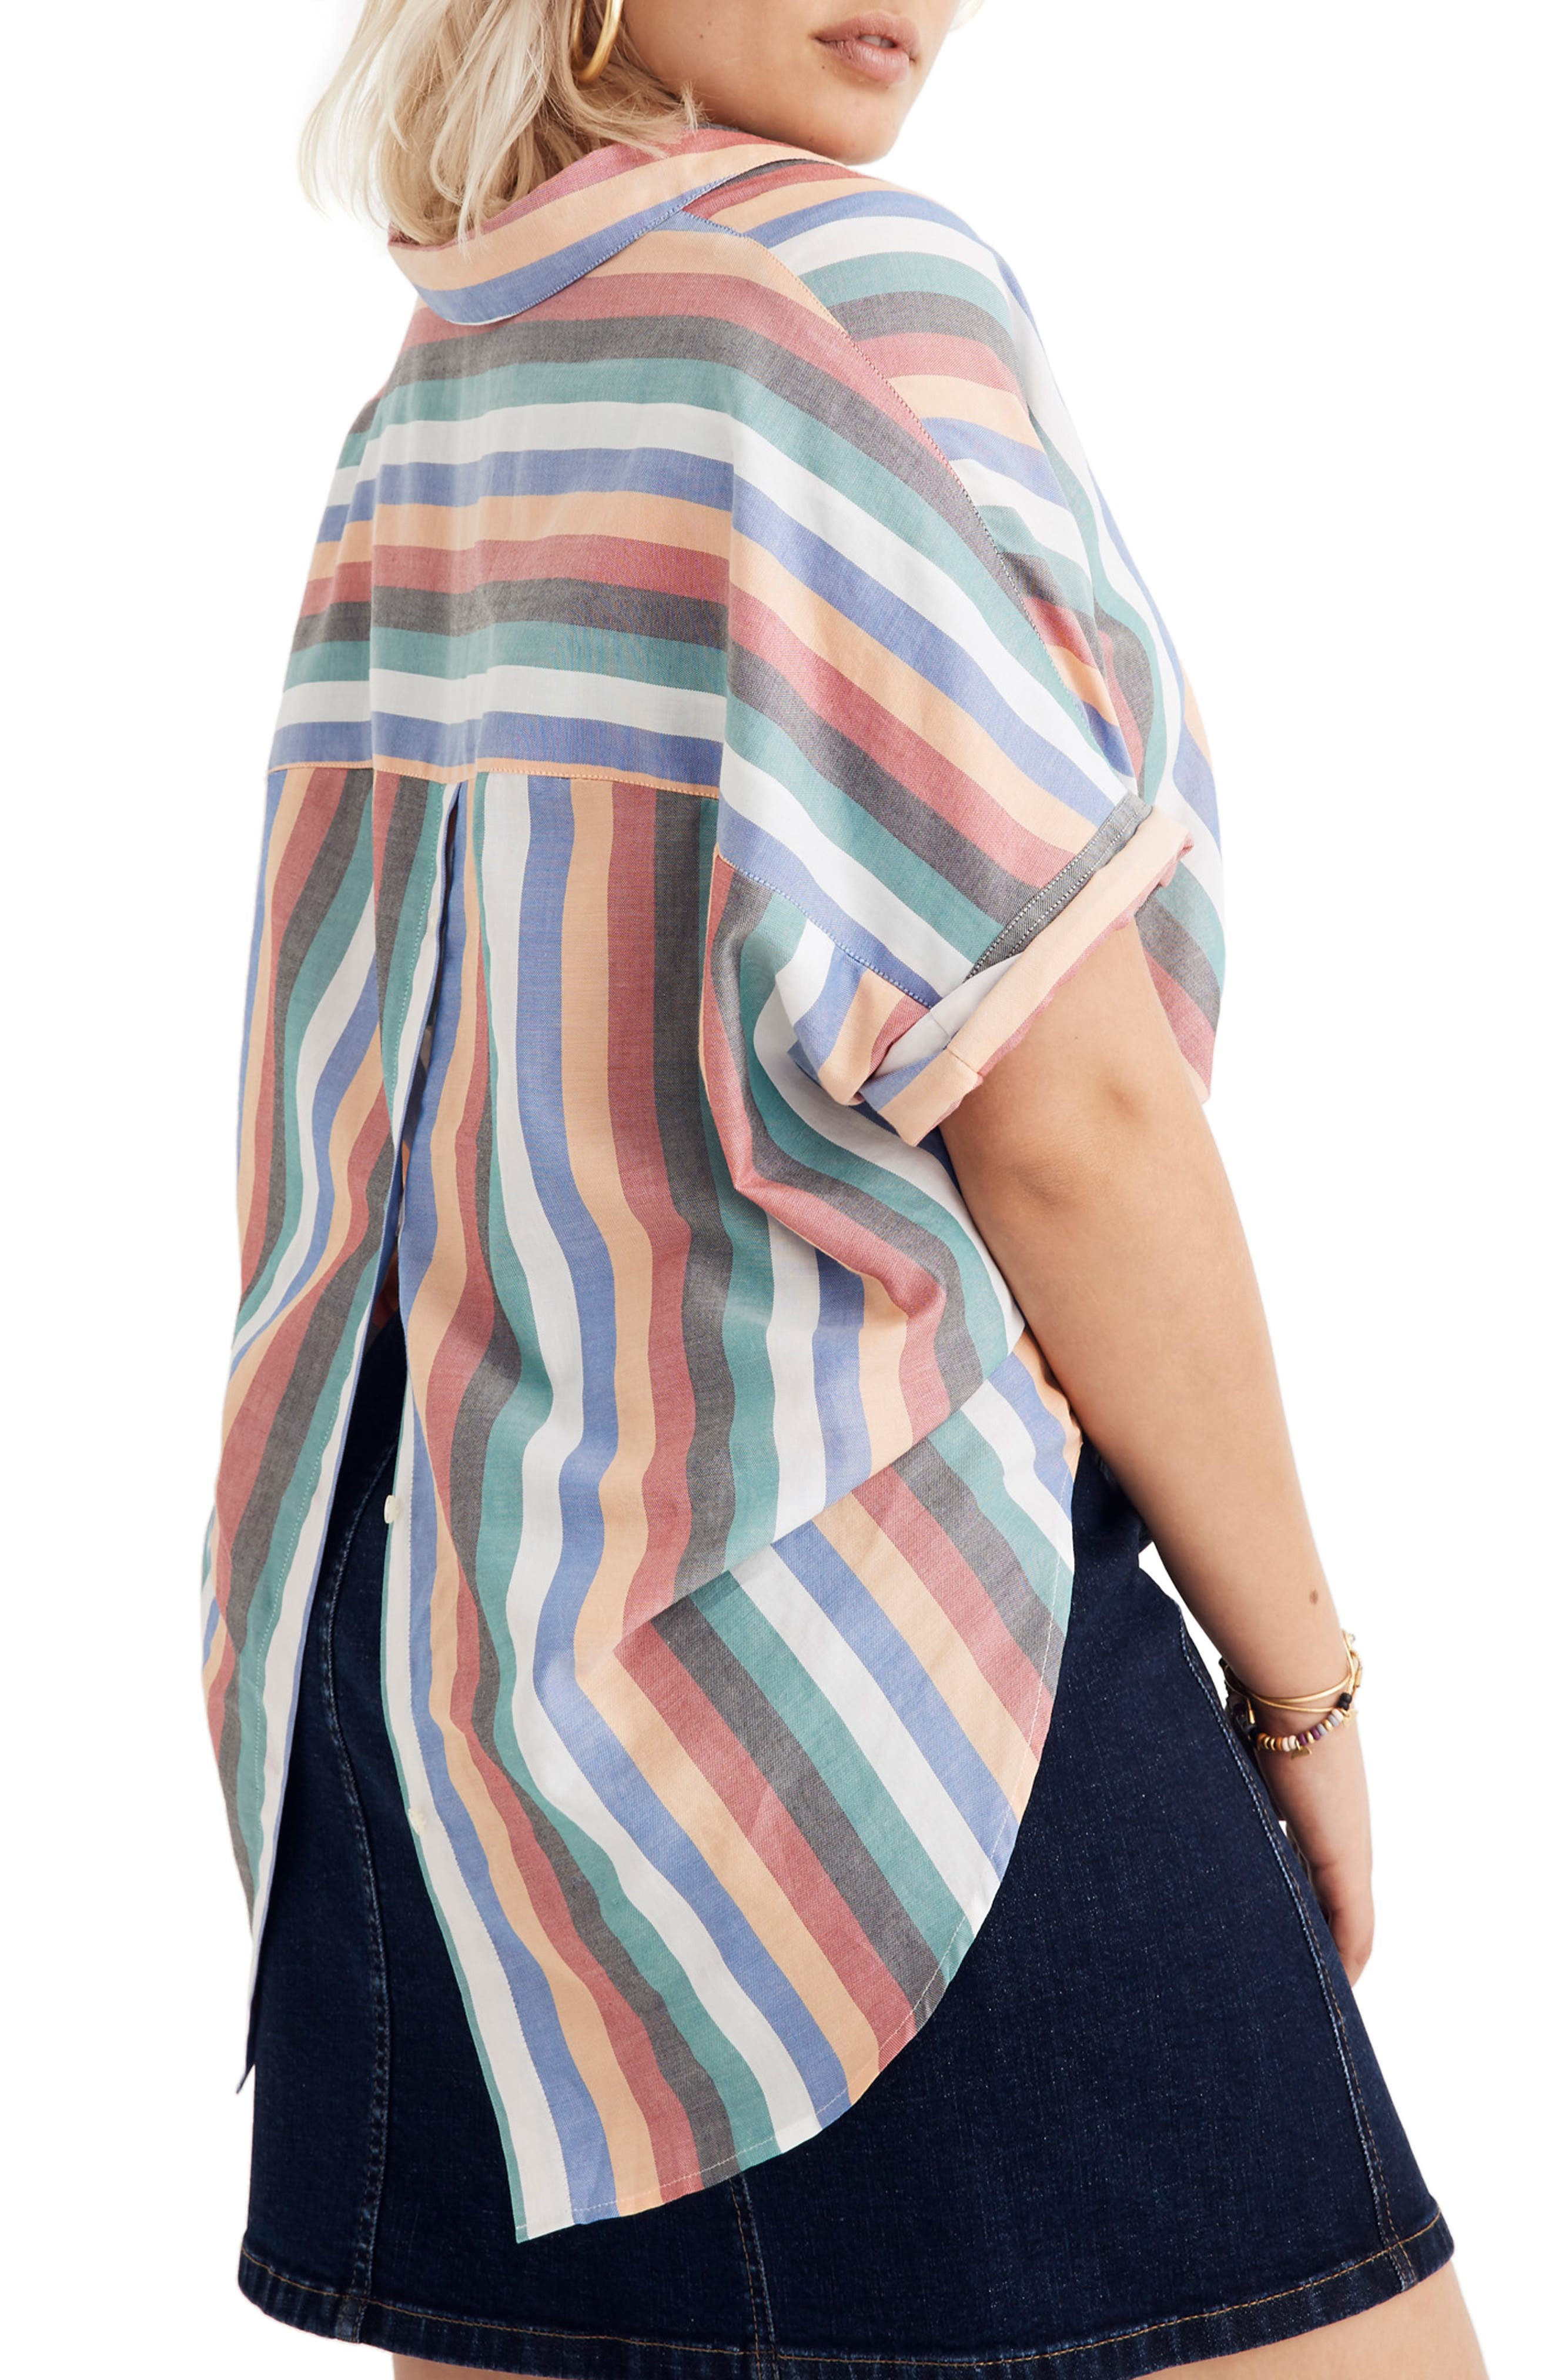 Courier Button Back Shirt,                             Alternate thumbnail 7, color,                             MULTI STRIPE